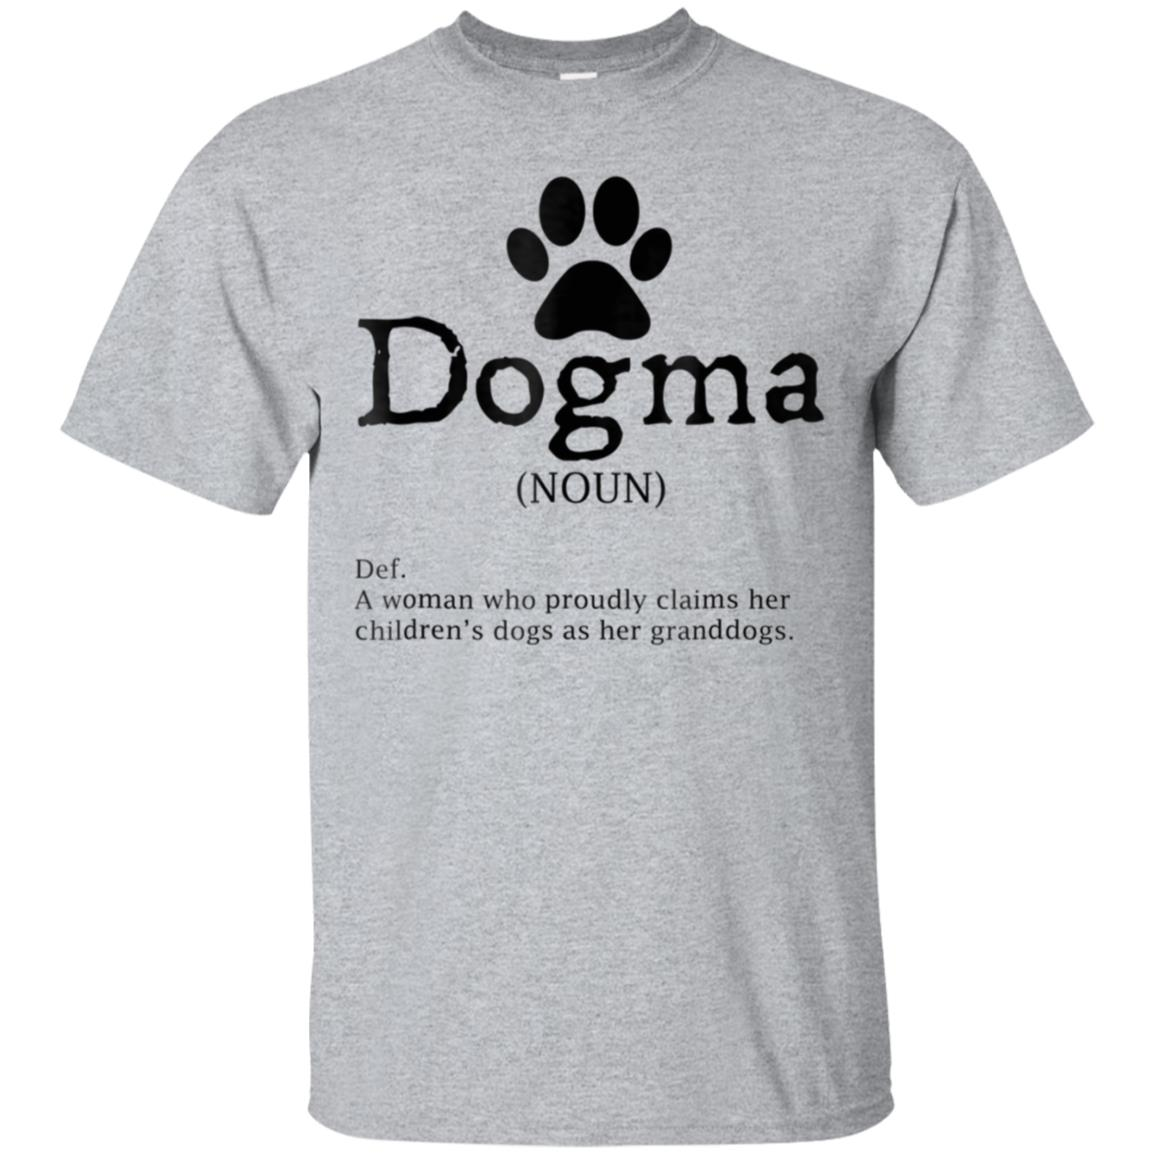 Dogma Definition - Grandma of Dogs Shirt 99promocode